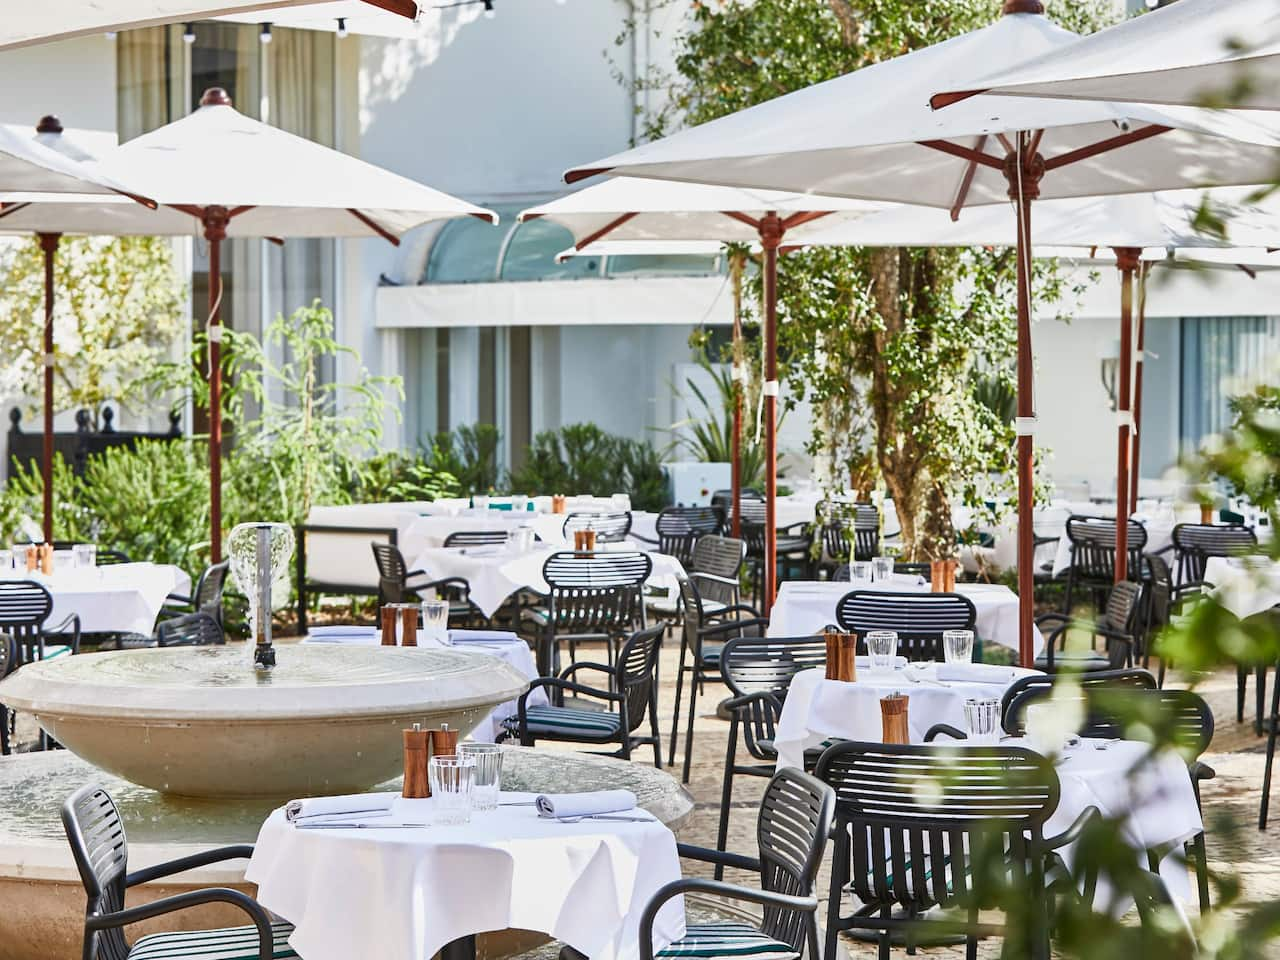 Le Jardin du Martinez at Hôtel Martinez Cannes by Hyatt